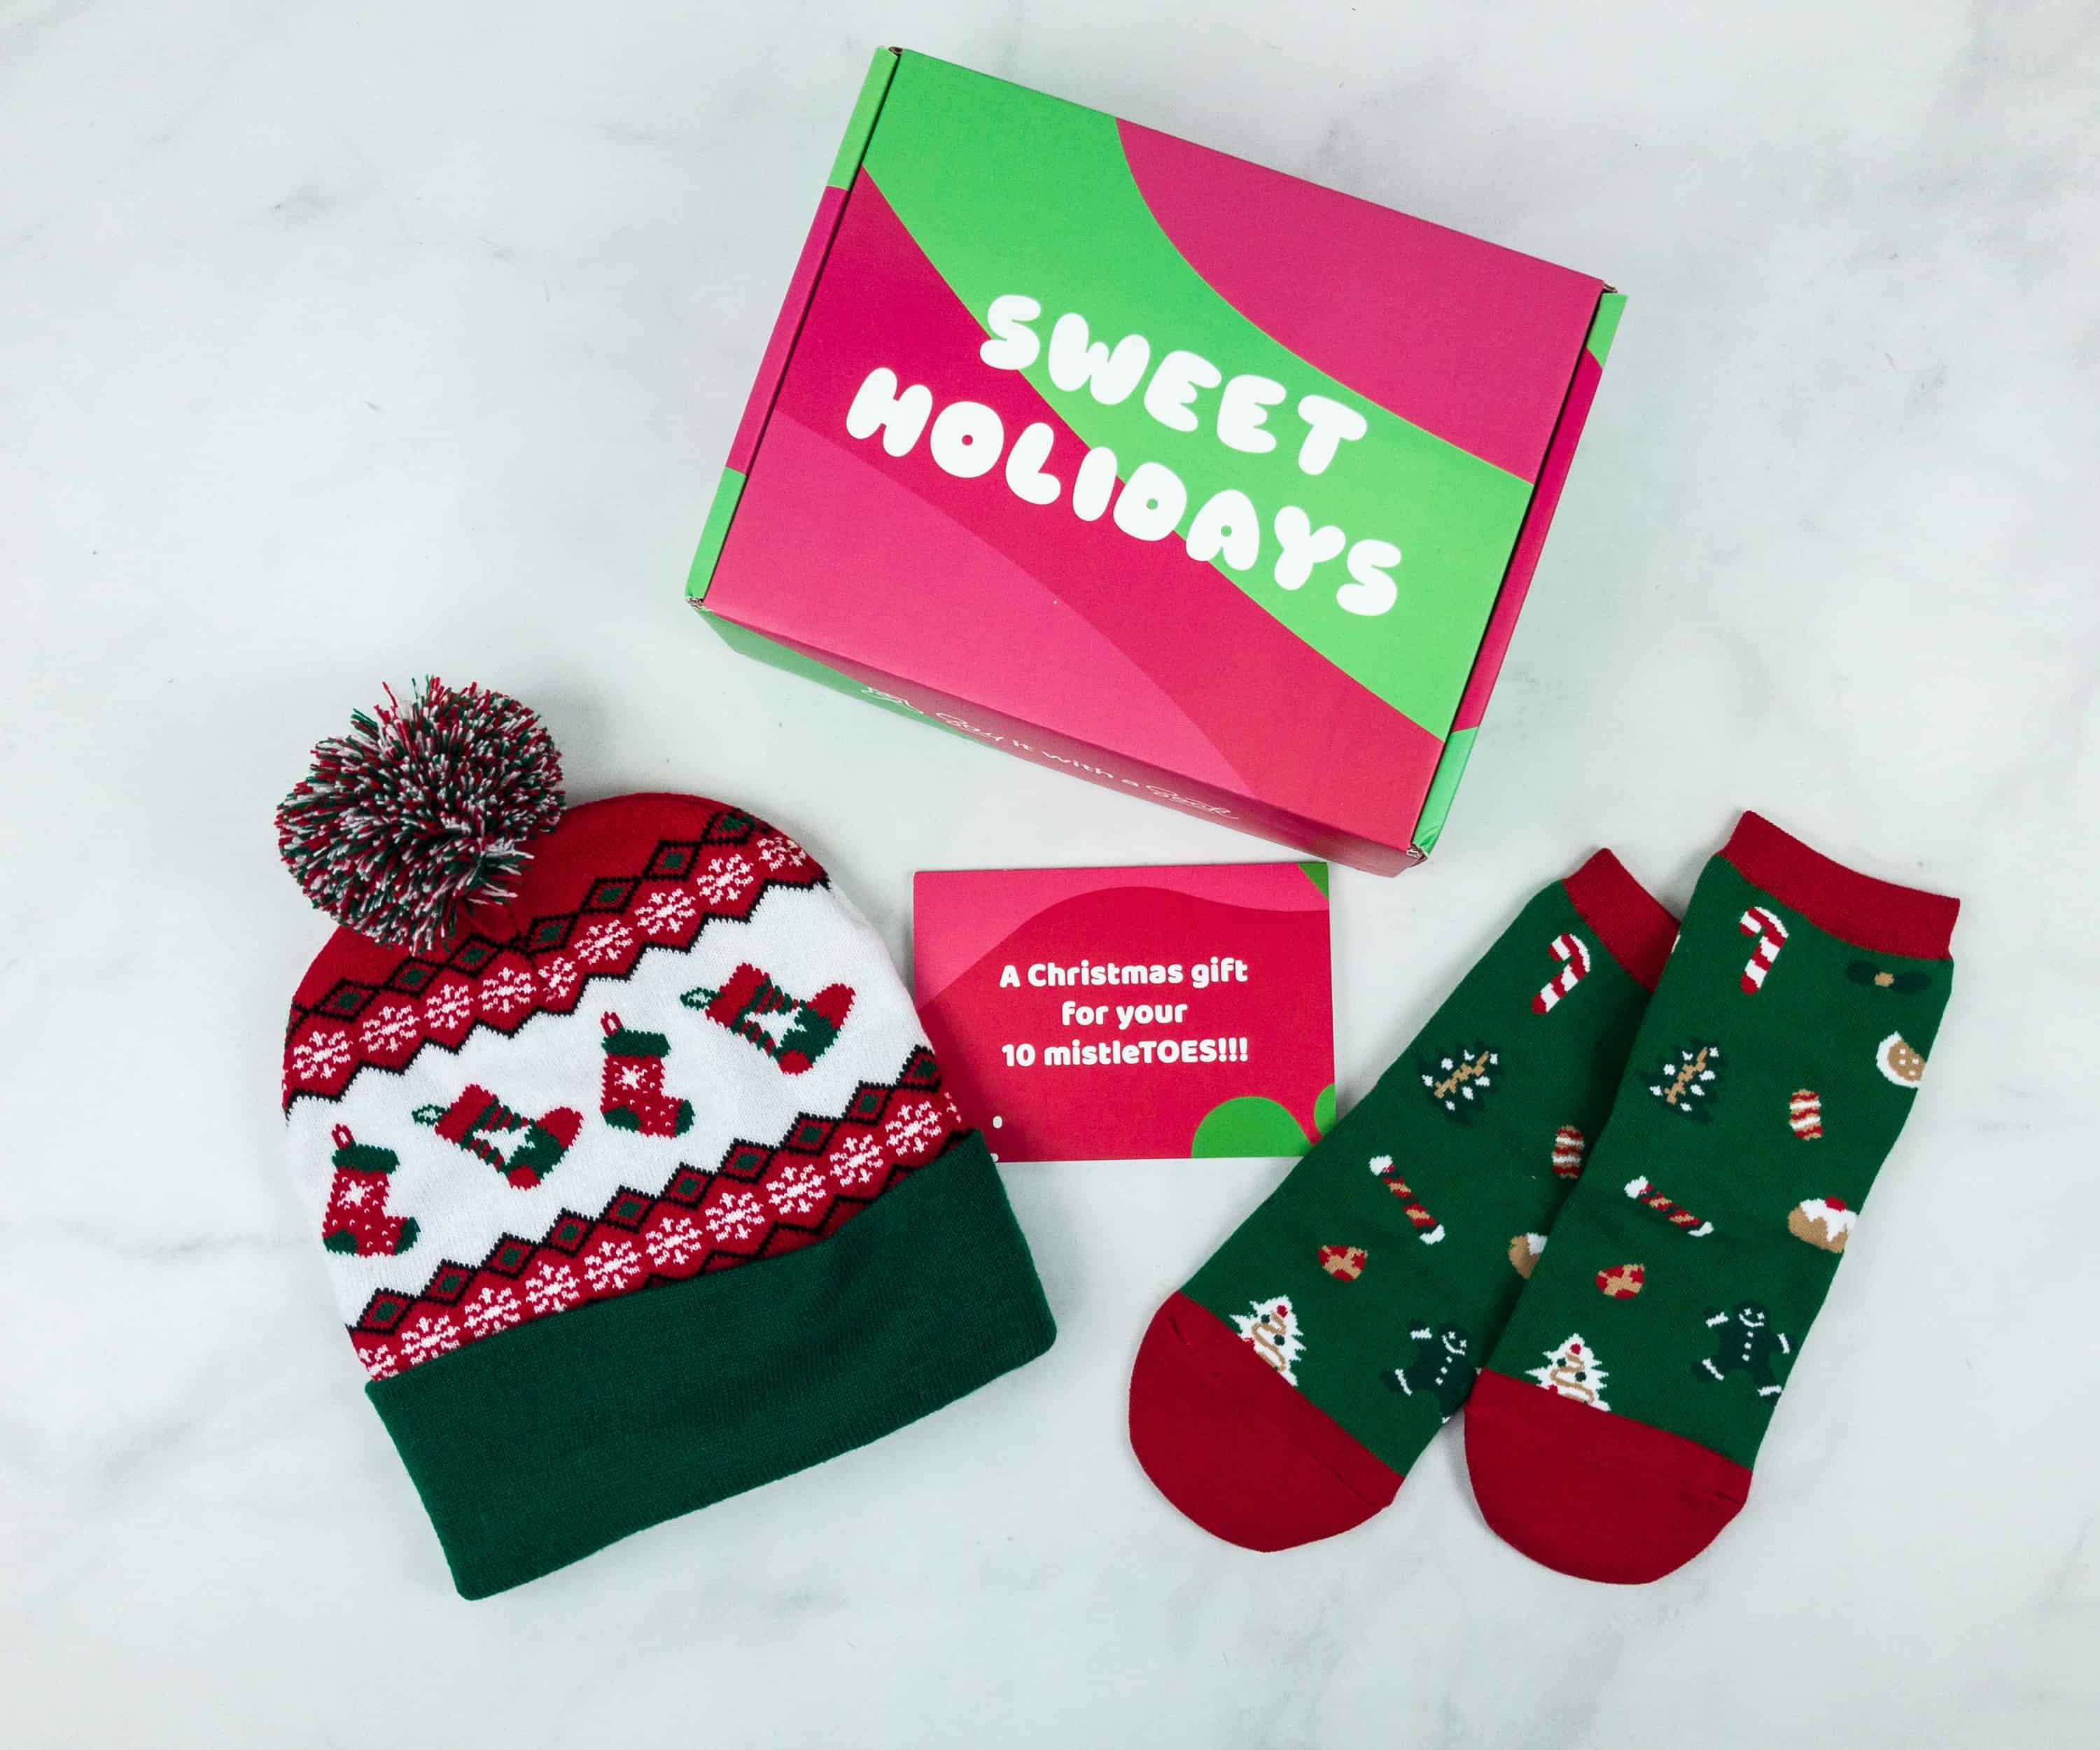 95859fb716b Say It With A Sock 2018 SockMas Bundle Review   Coupon - hello ...